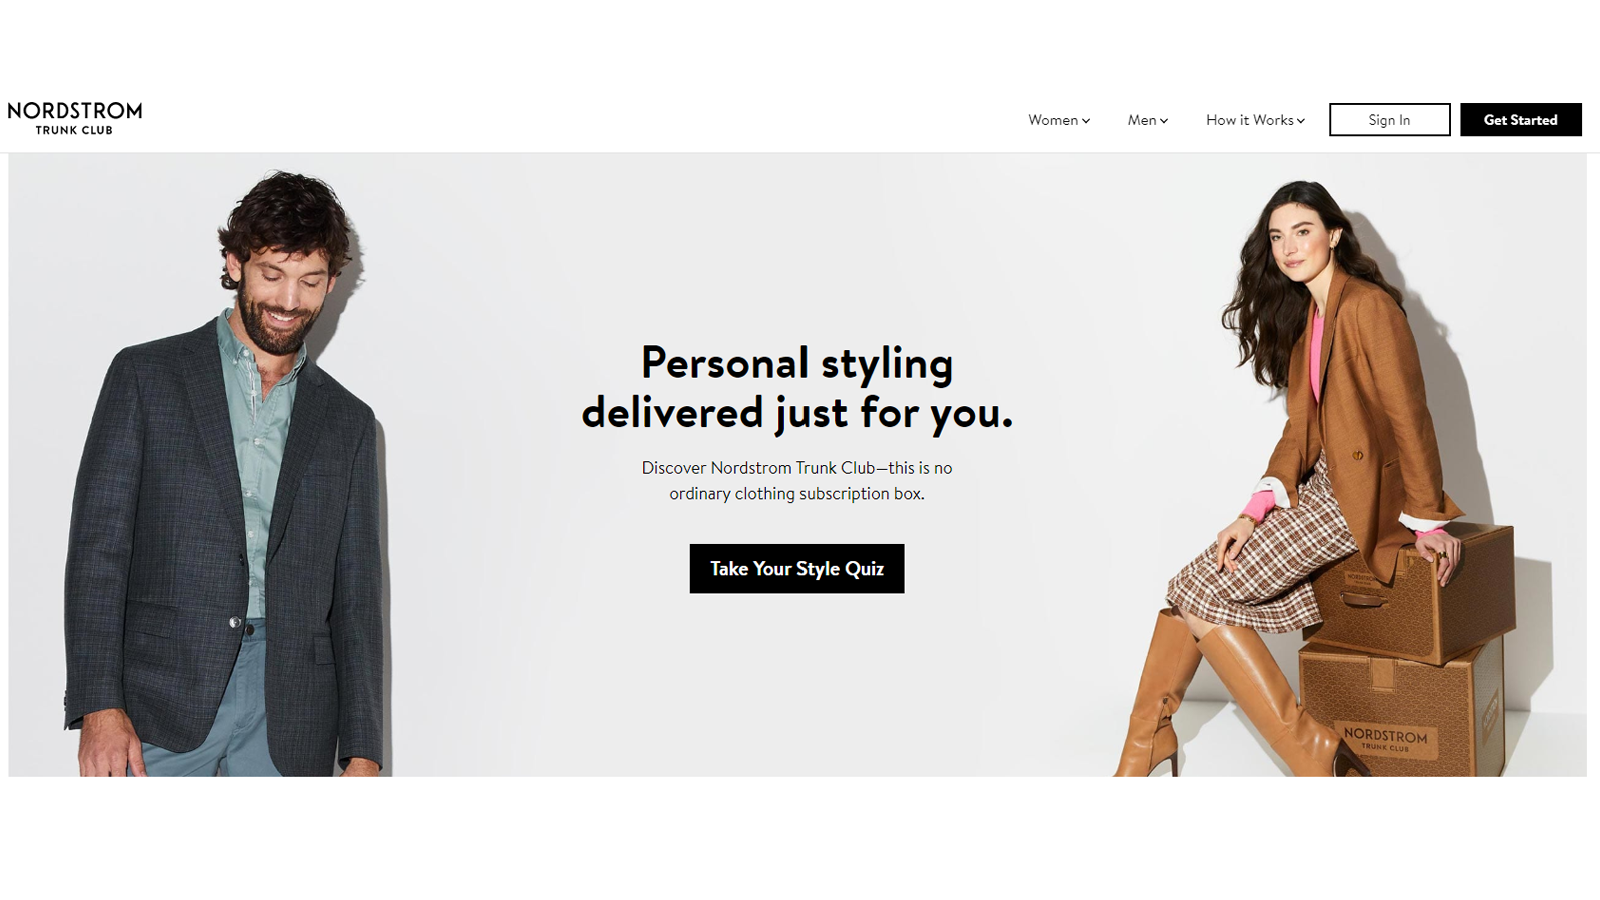 Nordstrom Trunk Club fashion subscription box for men and women who like Nordstrom style clothes